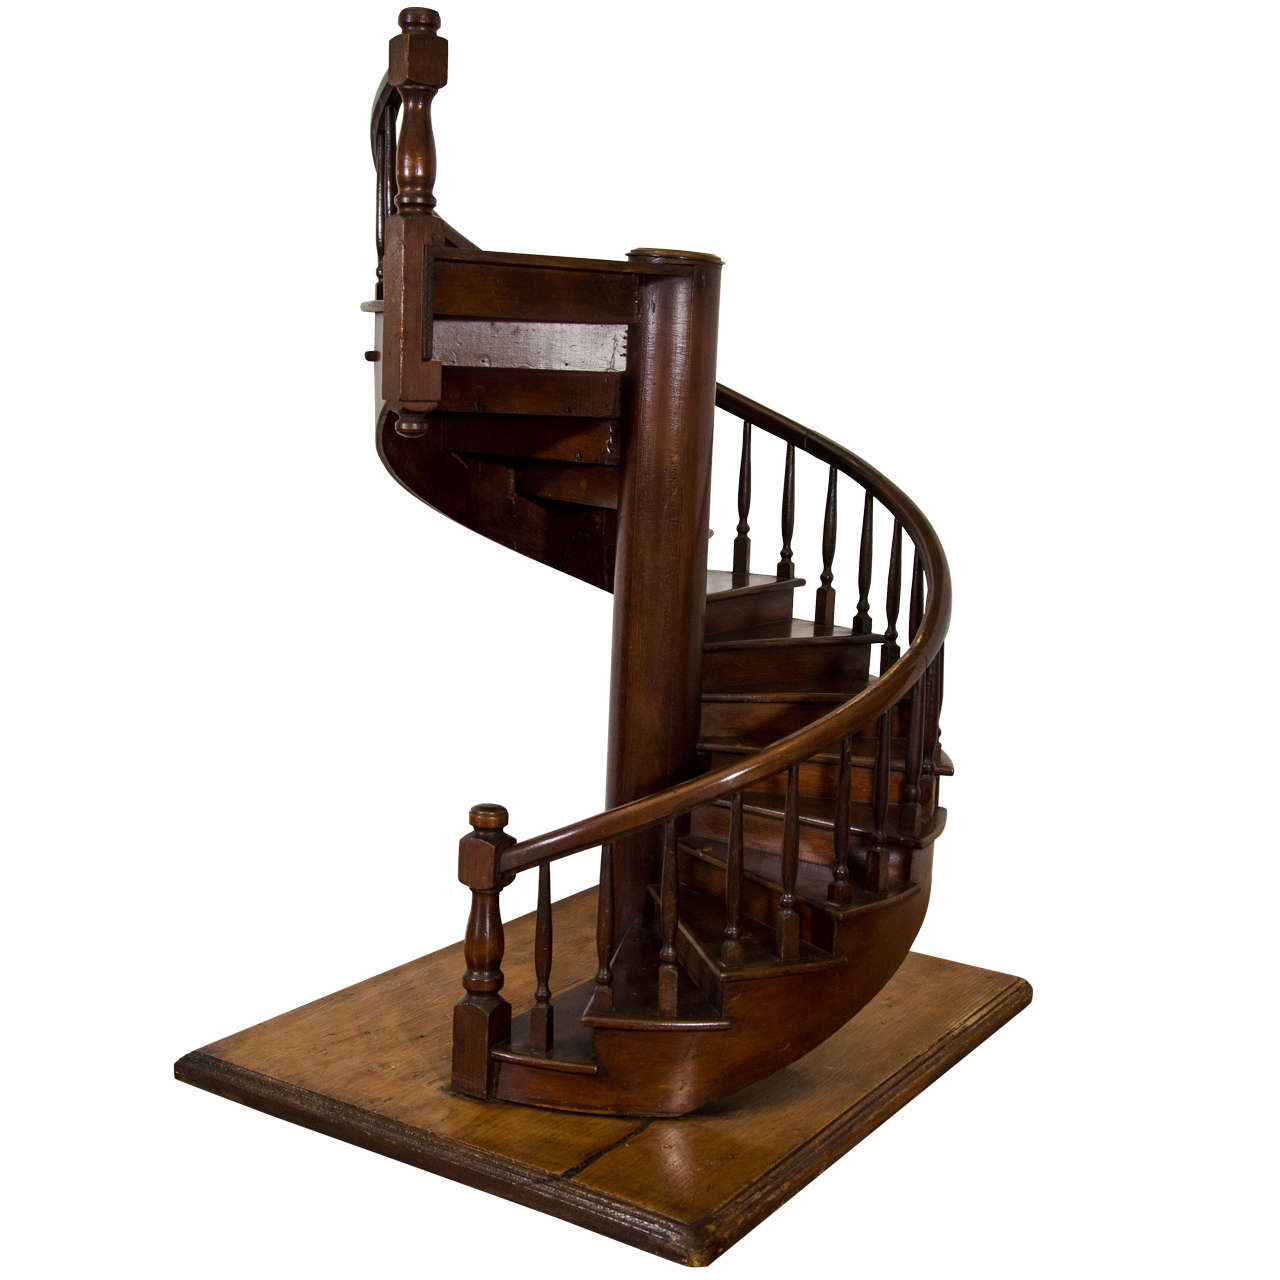 A Large Scale Edwardian Mahogany Architectural Model of a